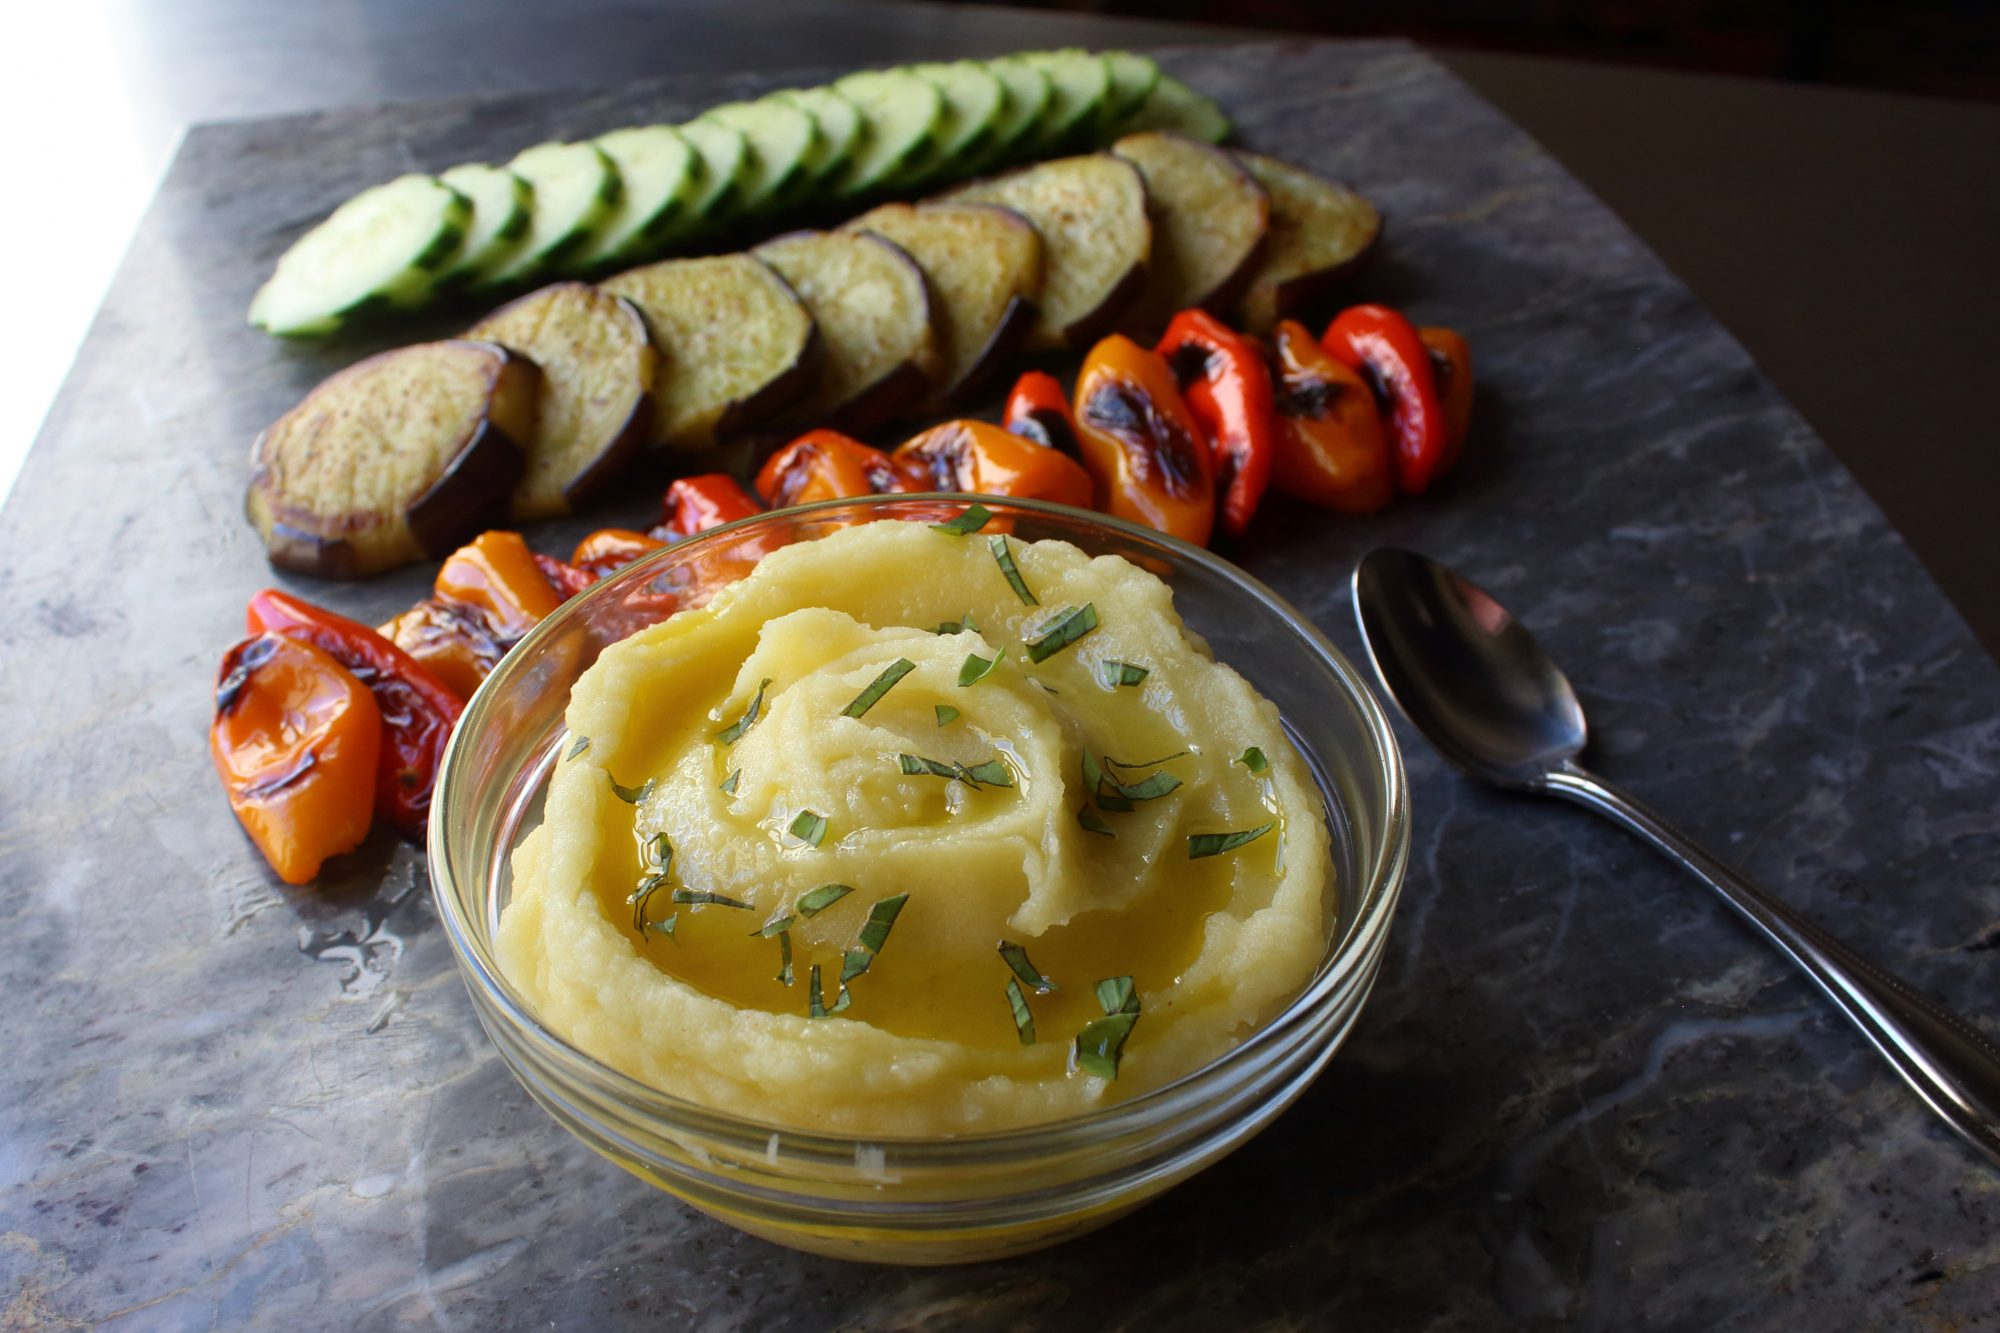 A small glass bowl of dip served with roasted red peppers, eggplant slices, and fresh cucumbers